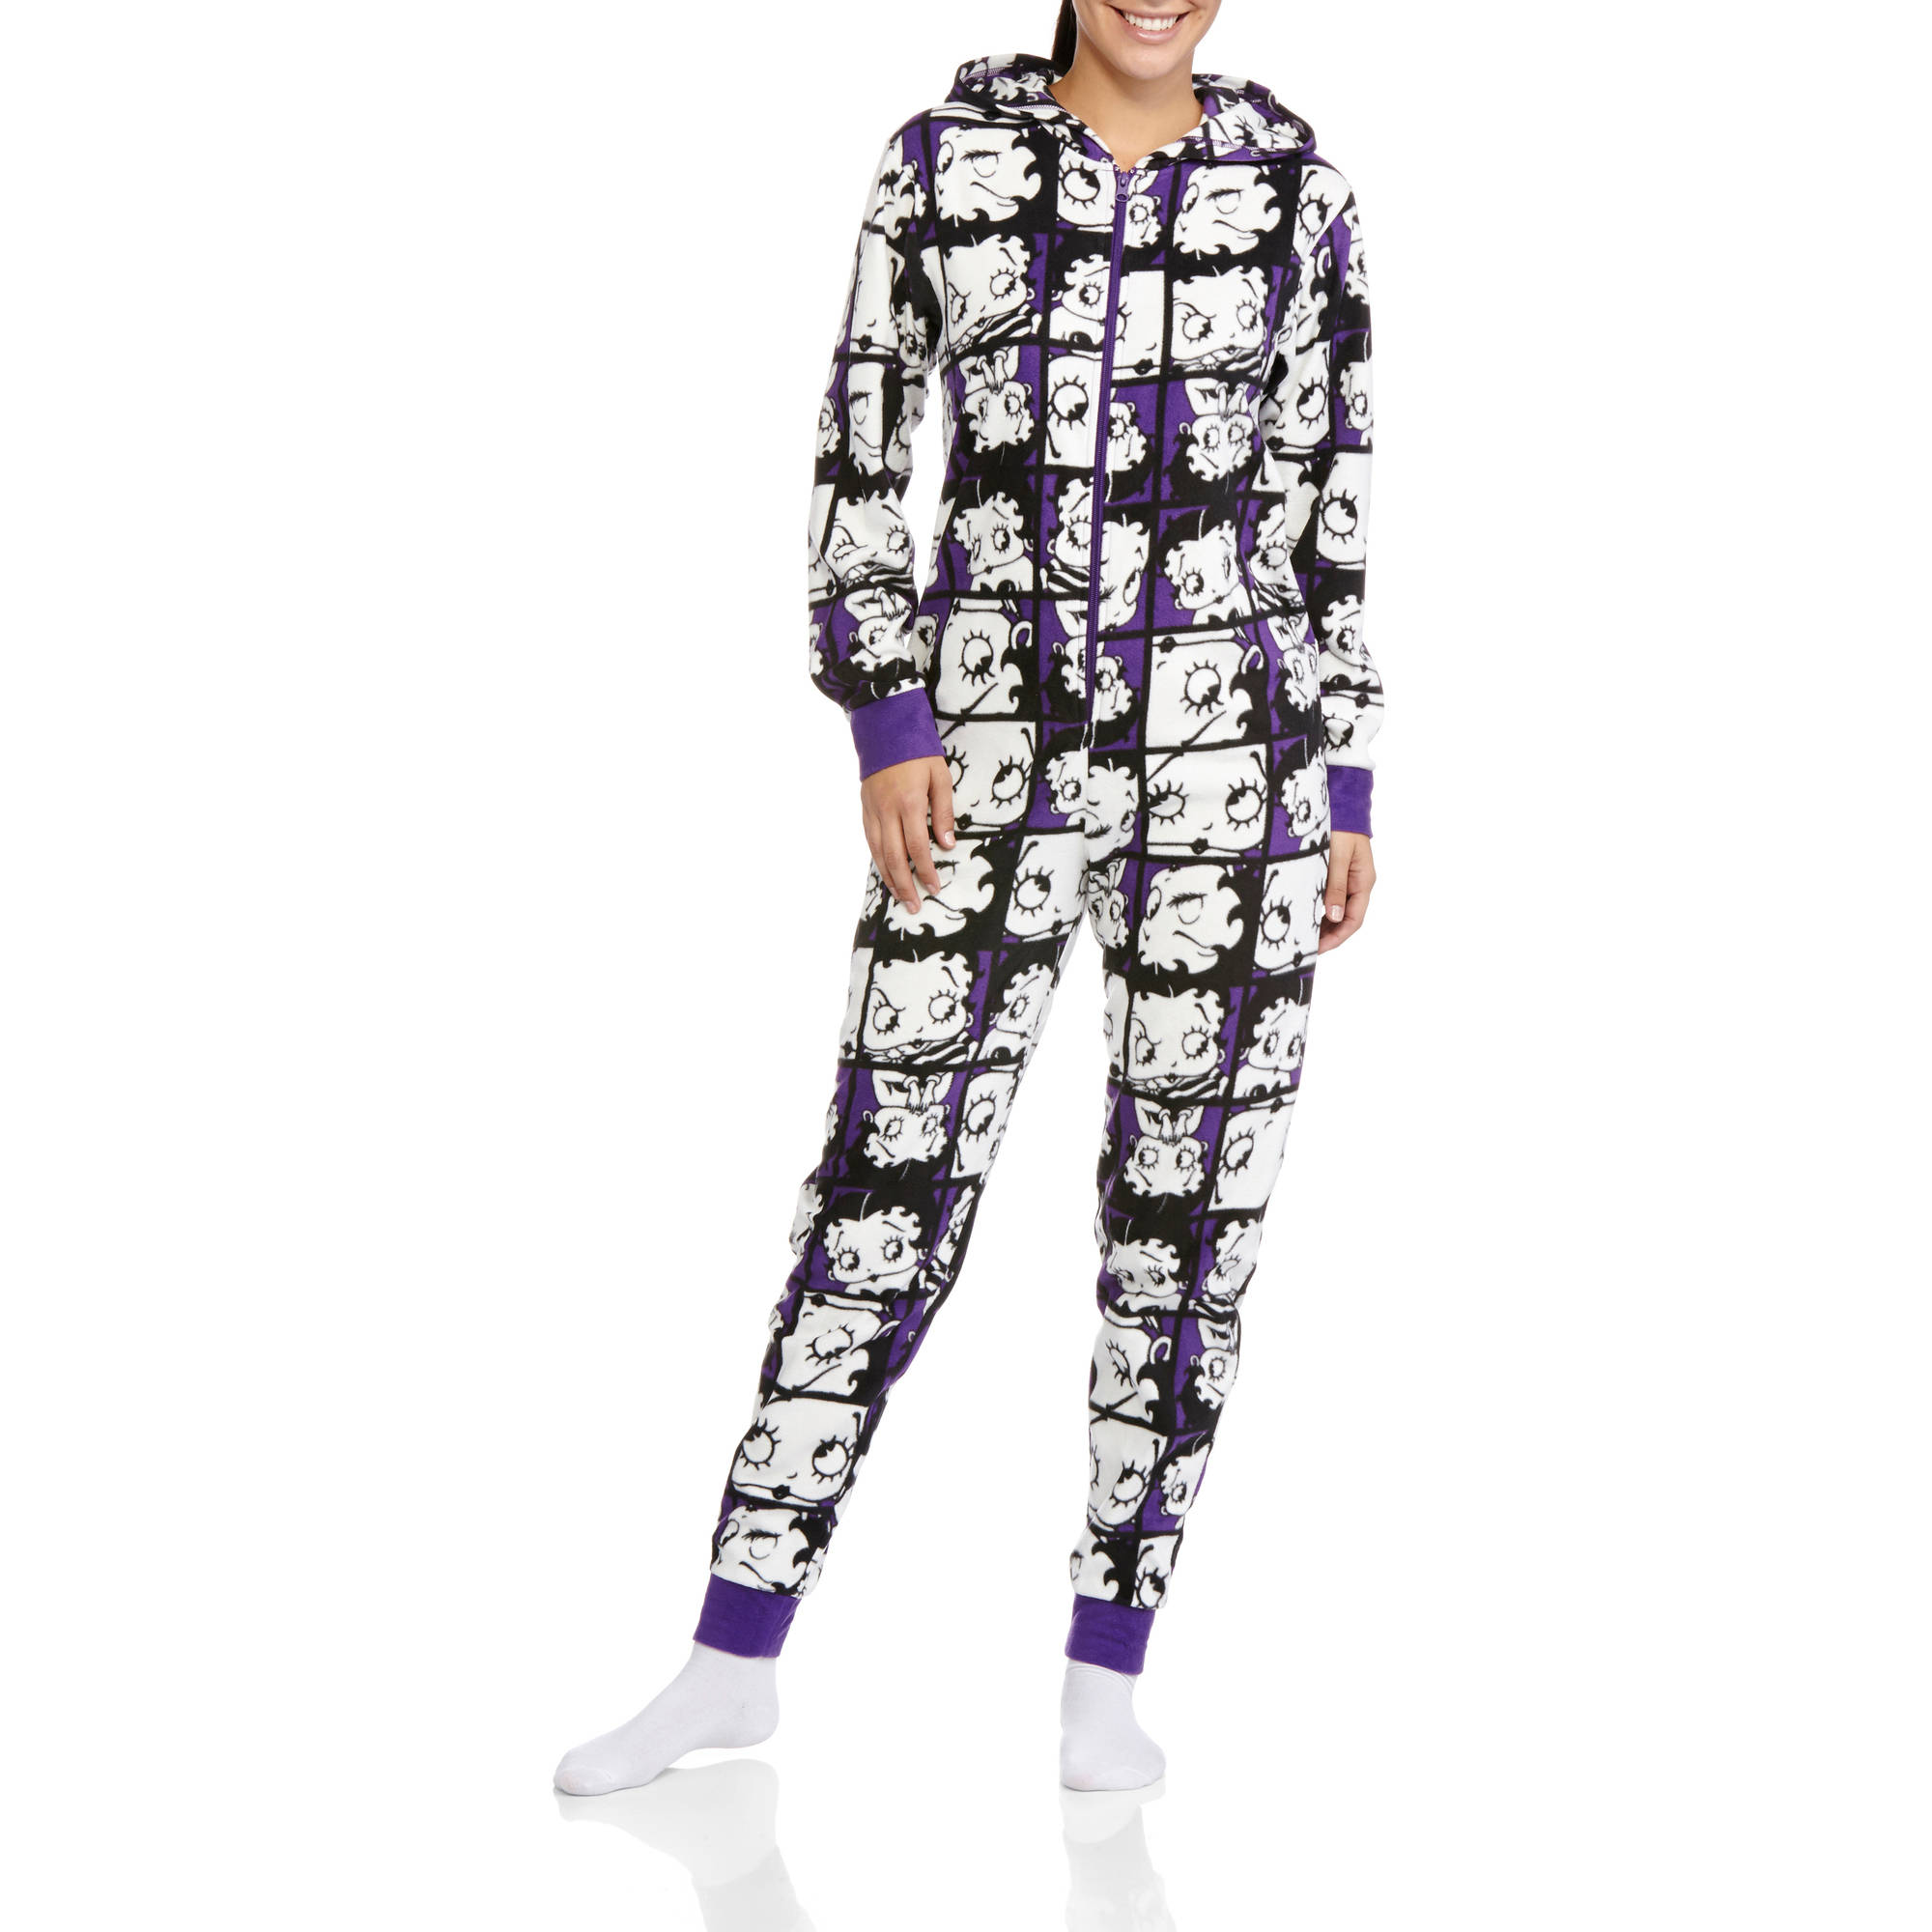 Plus Size Betty Boop Pajamas Breeze Clothing